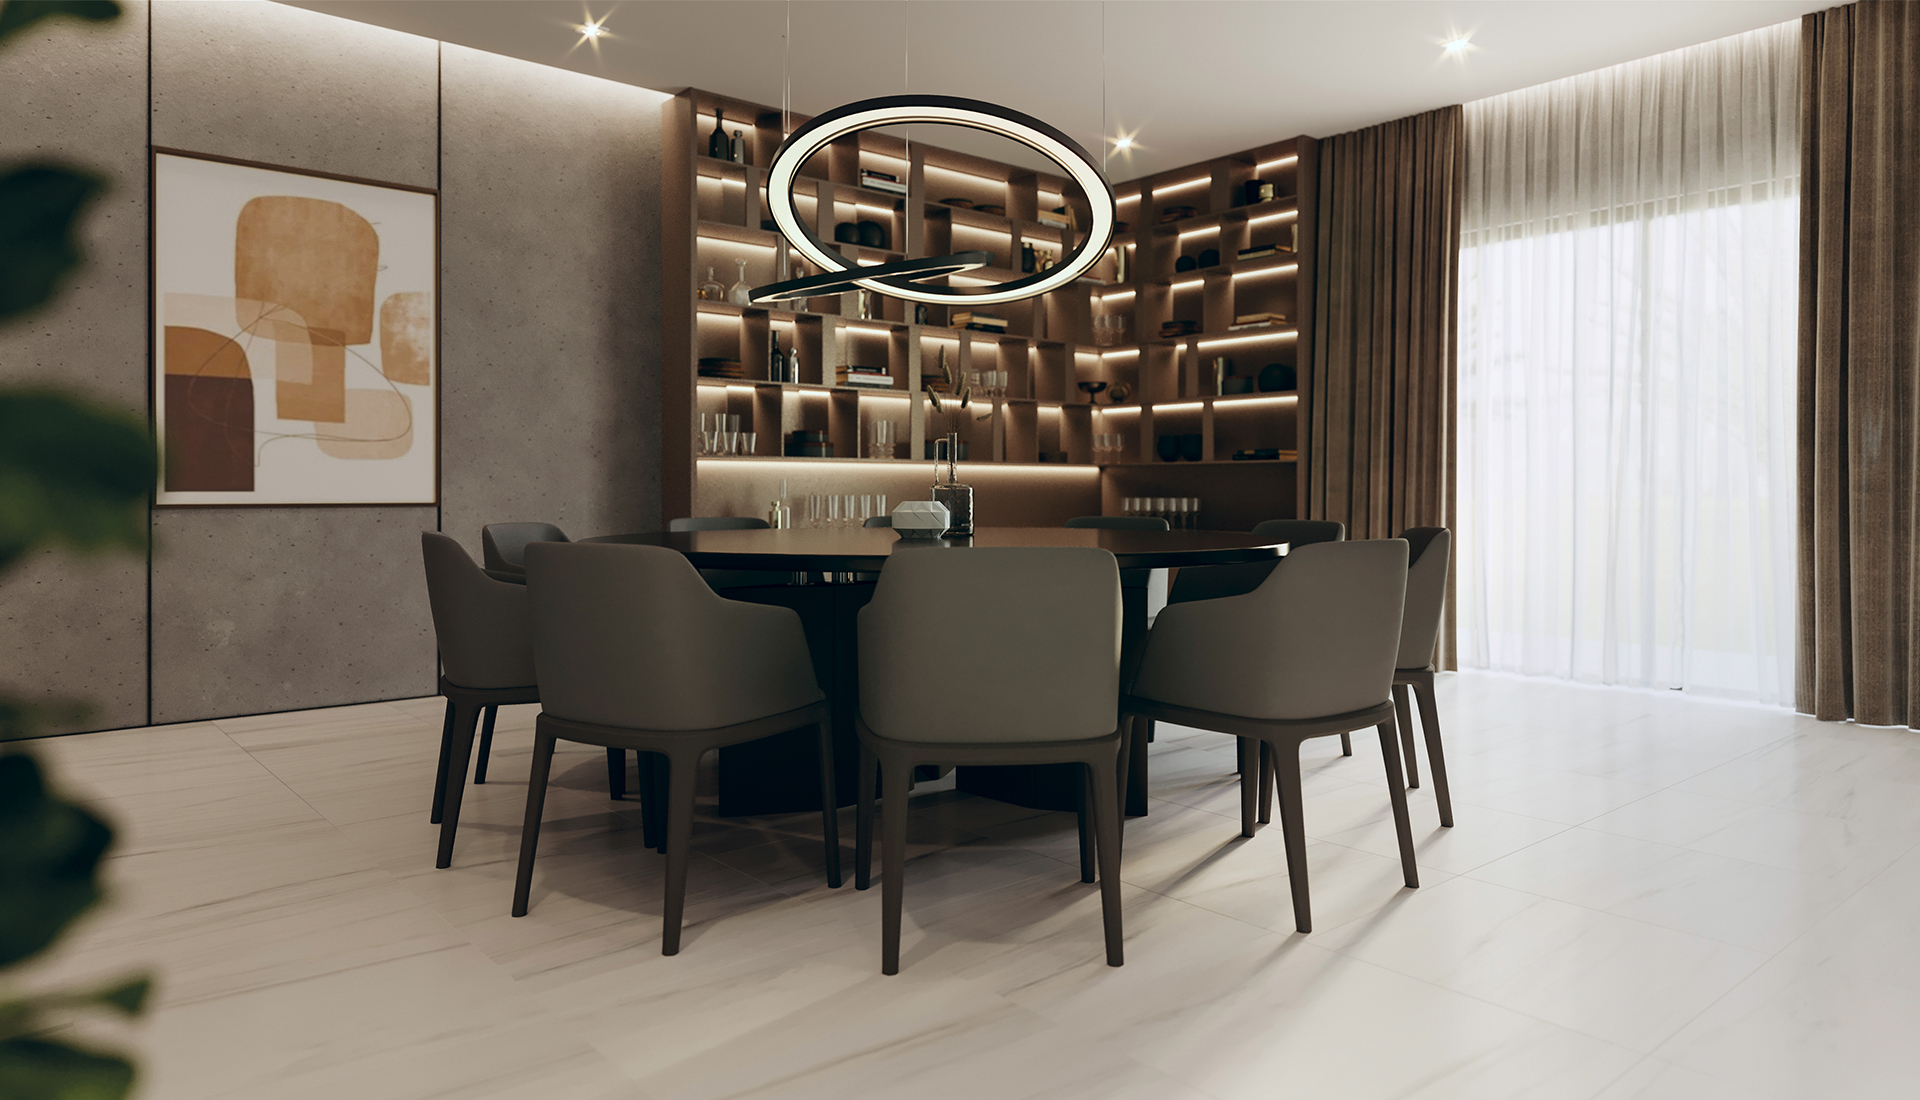 24 x 48 in / 60 x 120 cm Mayfair Suave Bianco Polished Rectified Glazed Porcelain Tile